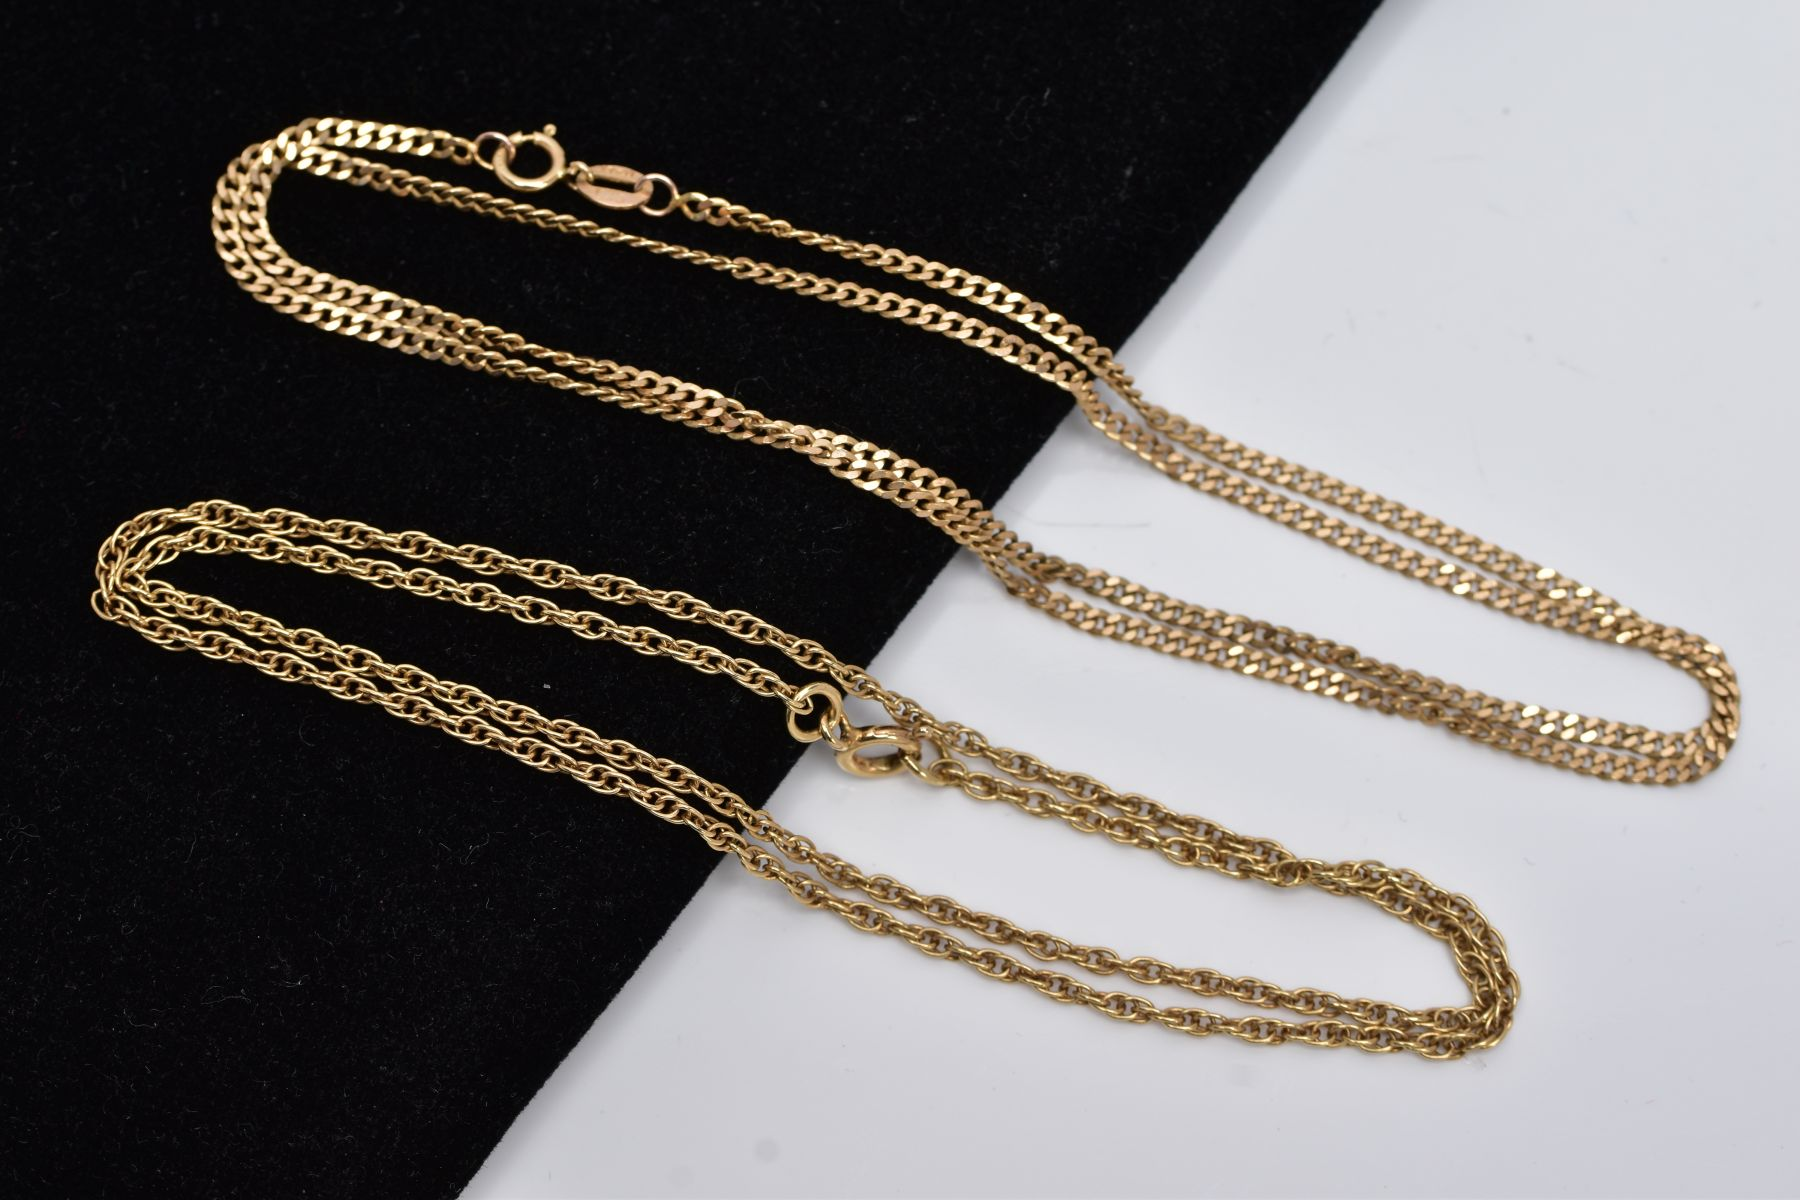 TWO 9CT GOLD CHAINS, the first a Prince of Wales chain, fitted with a spring clasp, hallmarked 9ct